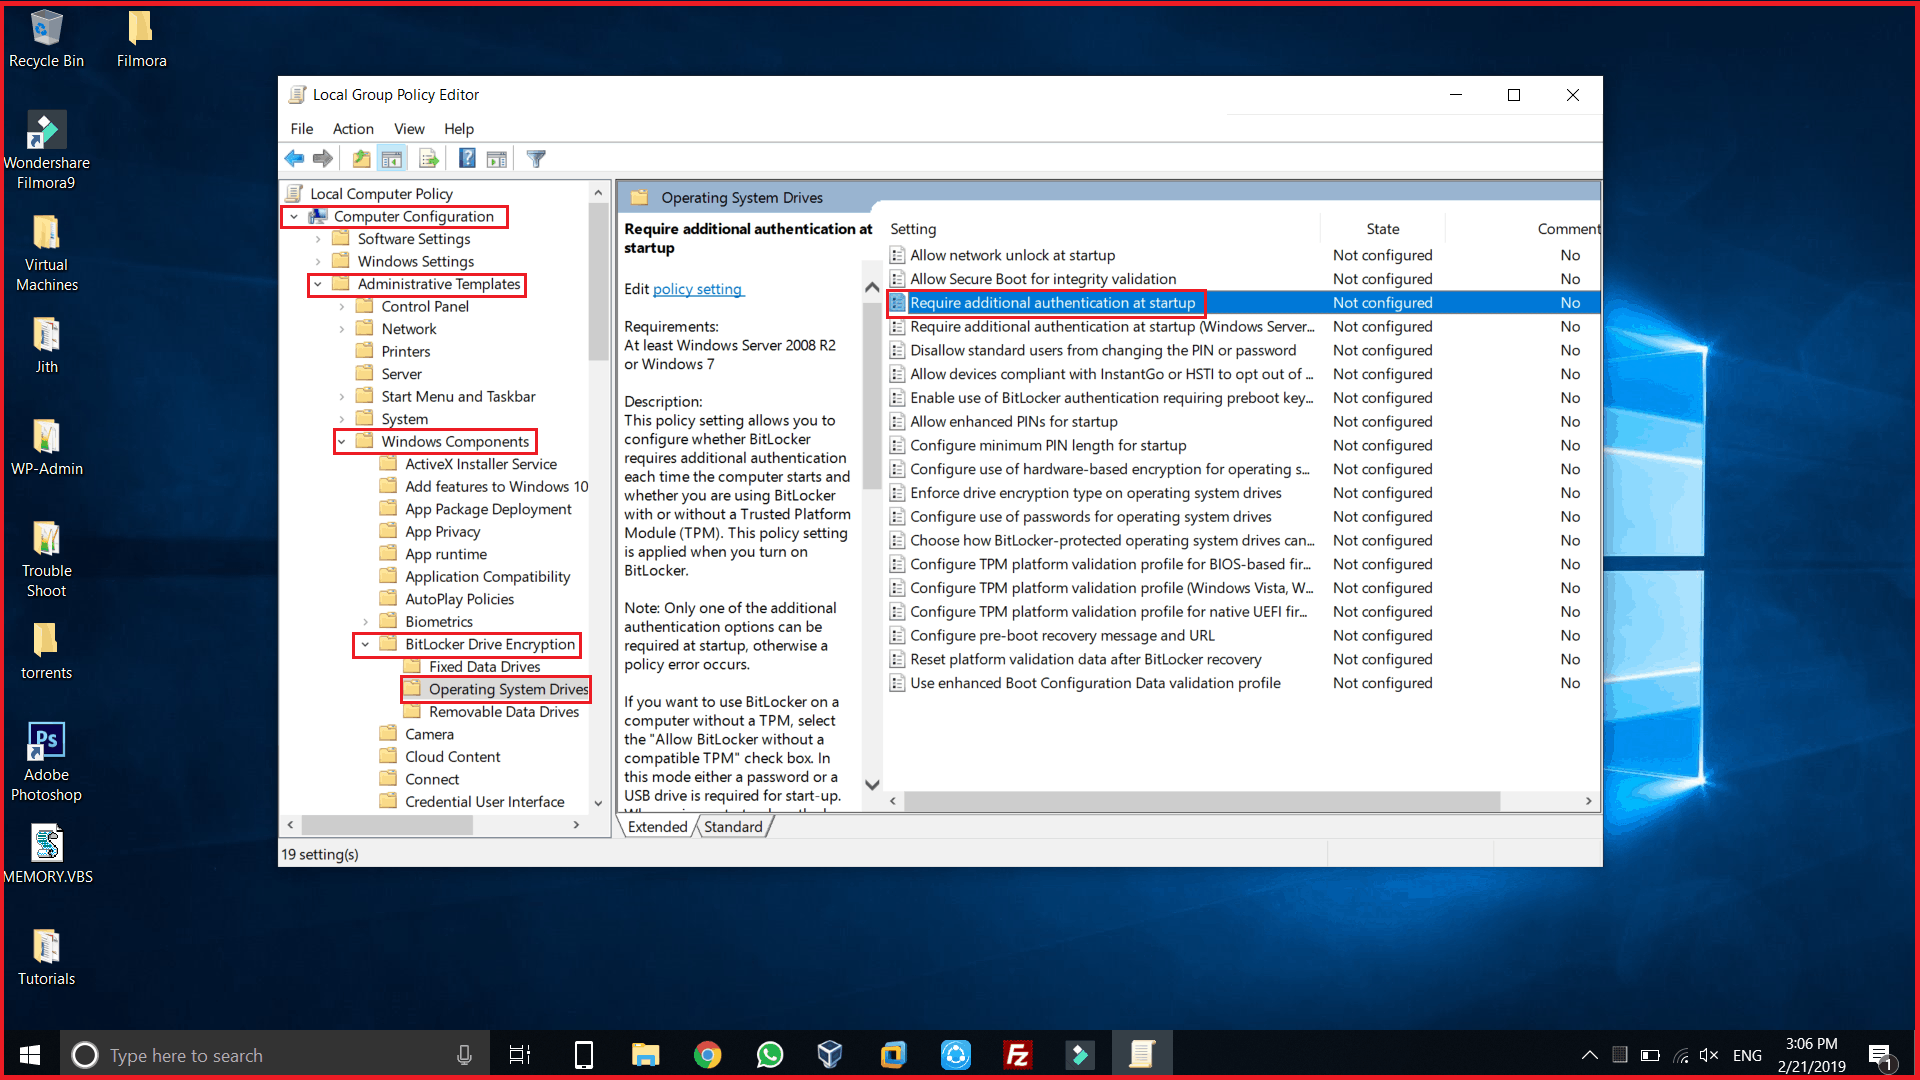 BitLocker for C Drive Required additional authenticaton at startup